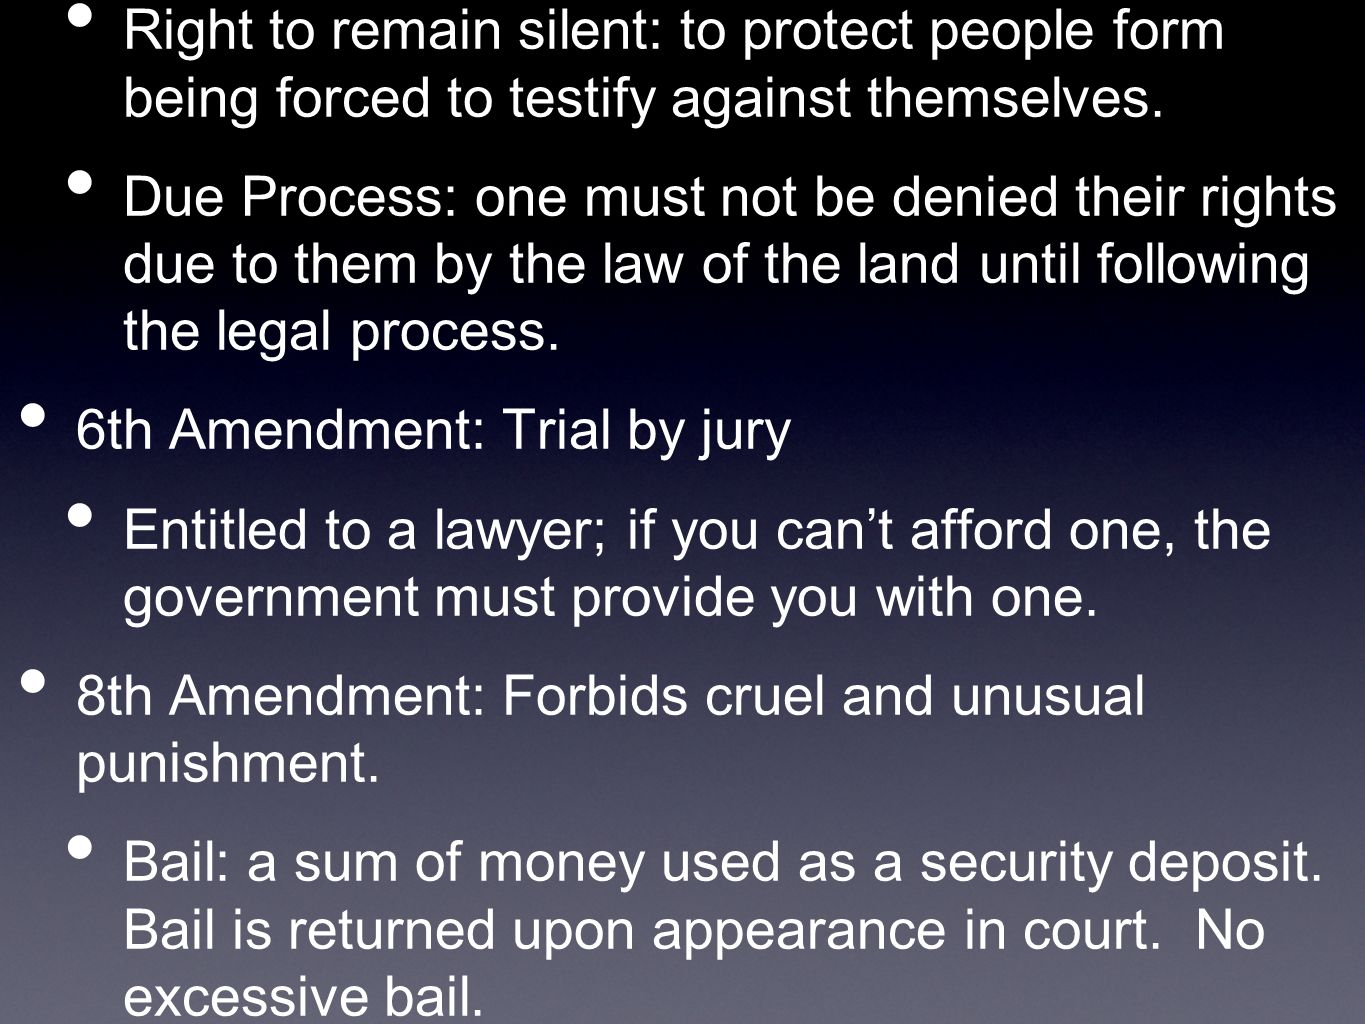 Right to remain silent: to protect people form being forced to testify against themselves. Due Process: one must not be denied their rights due to the